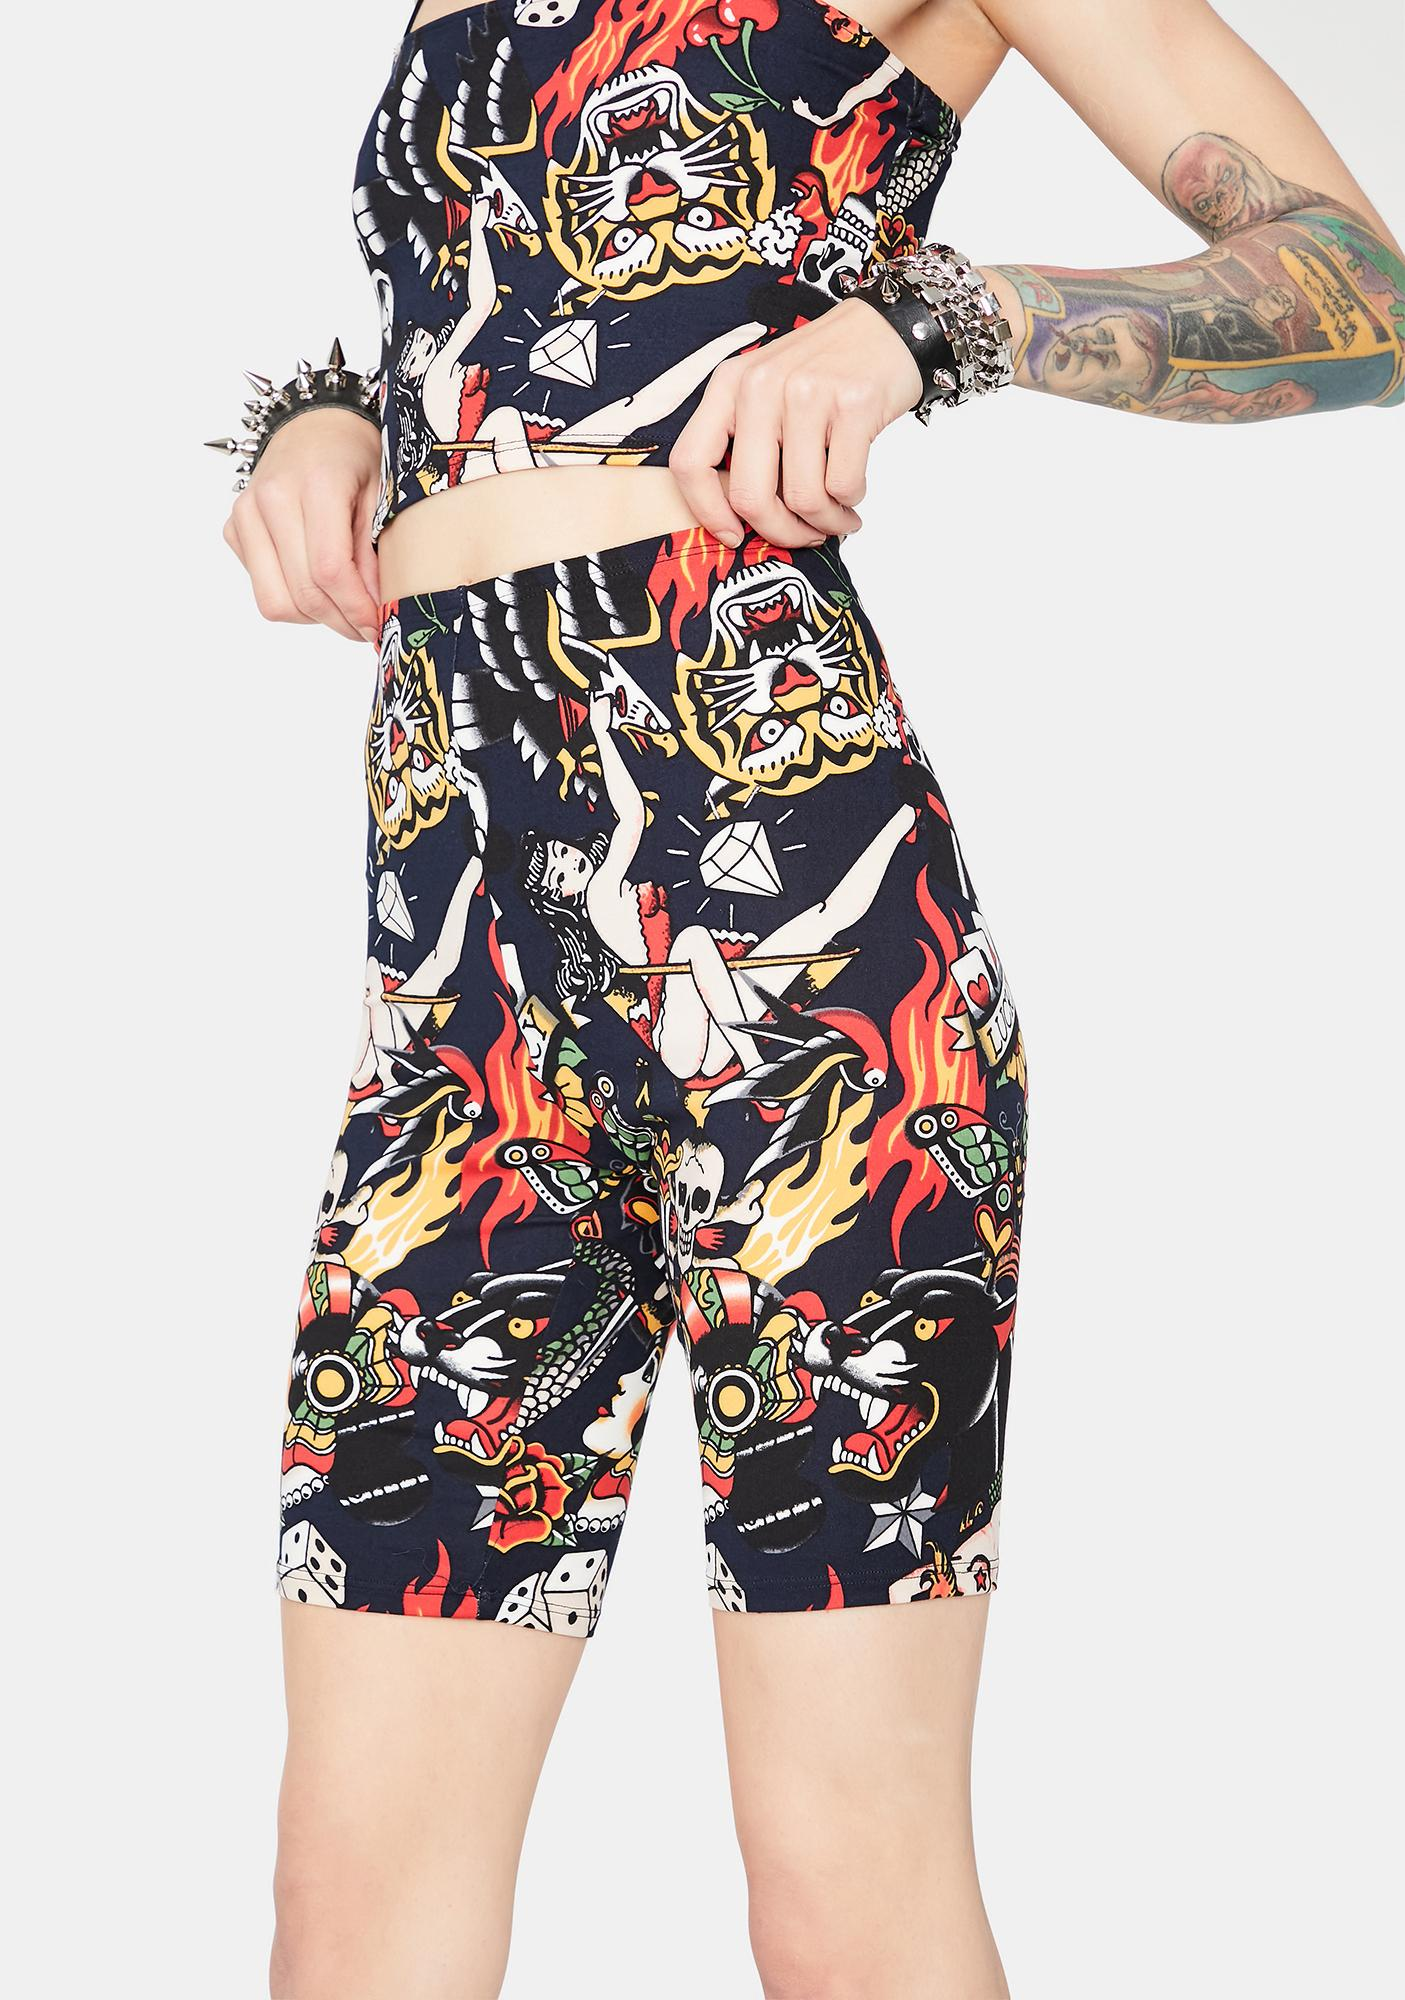 Take A Gamble Biker Shorts